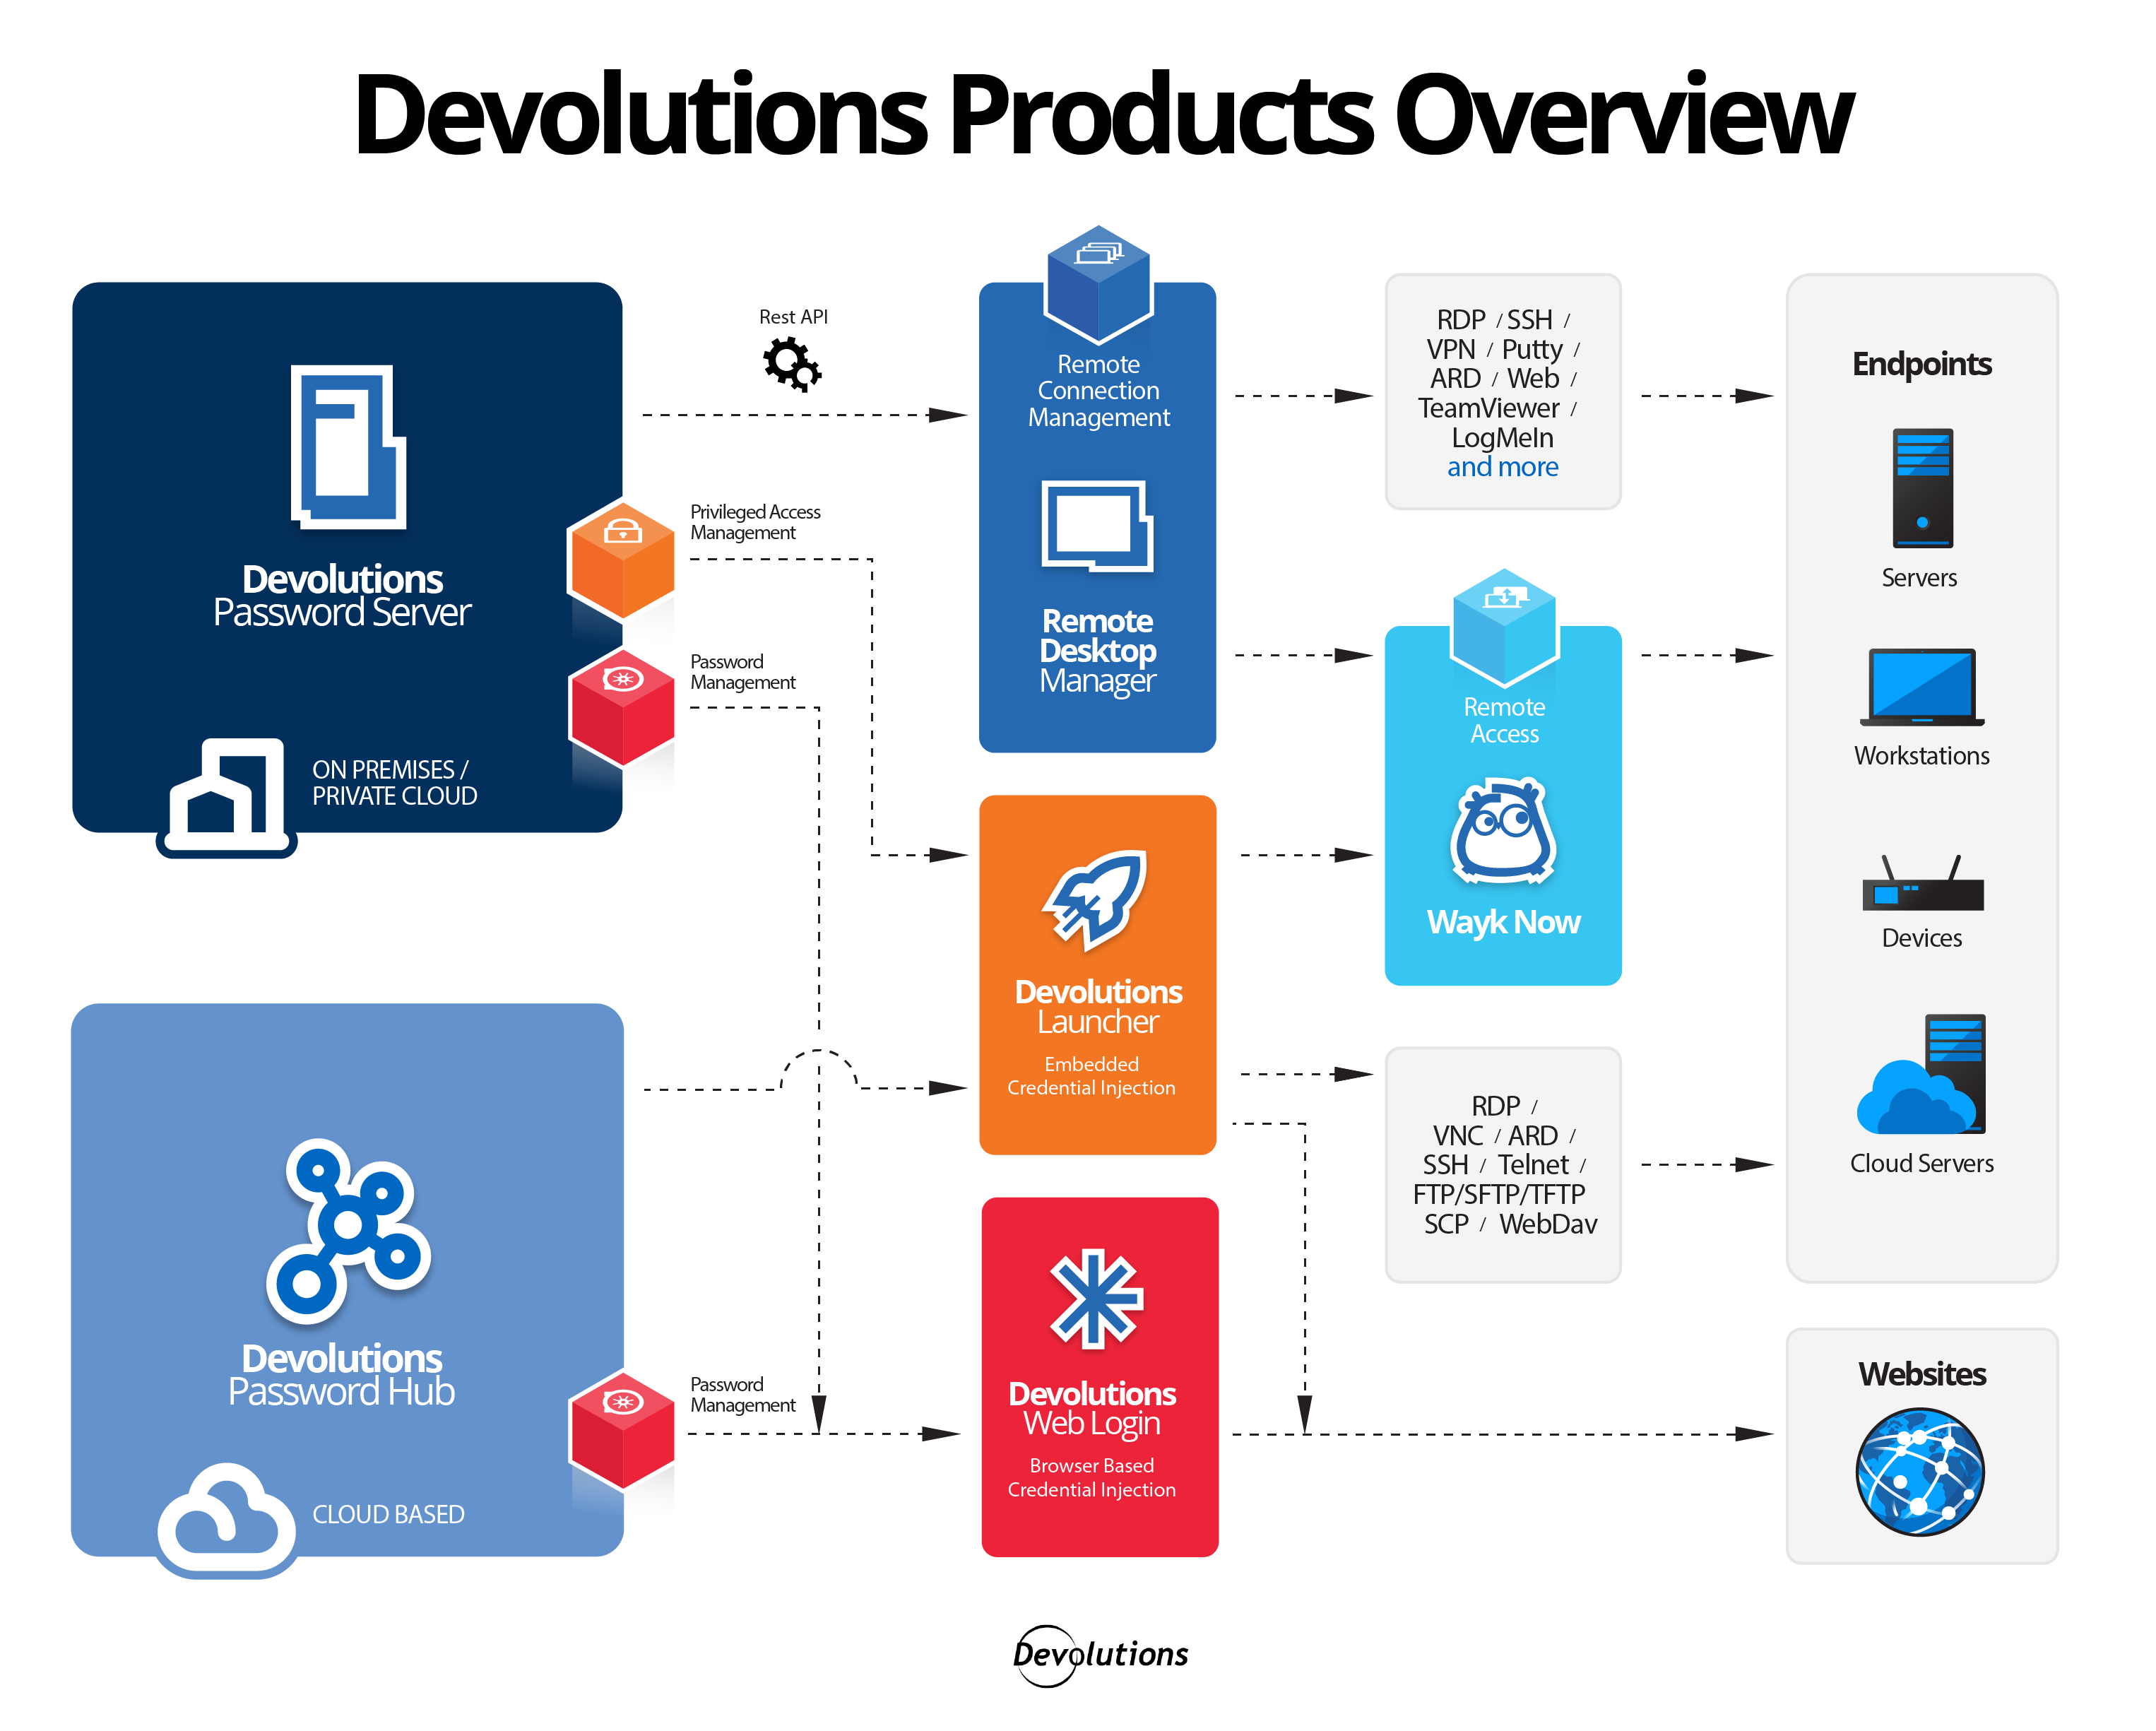 Products-Overview-Diagram-2019 Widescereen-01